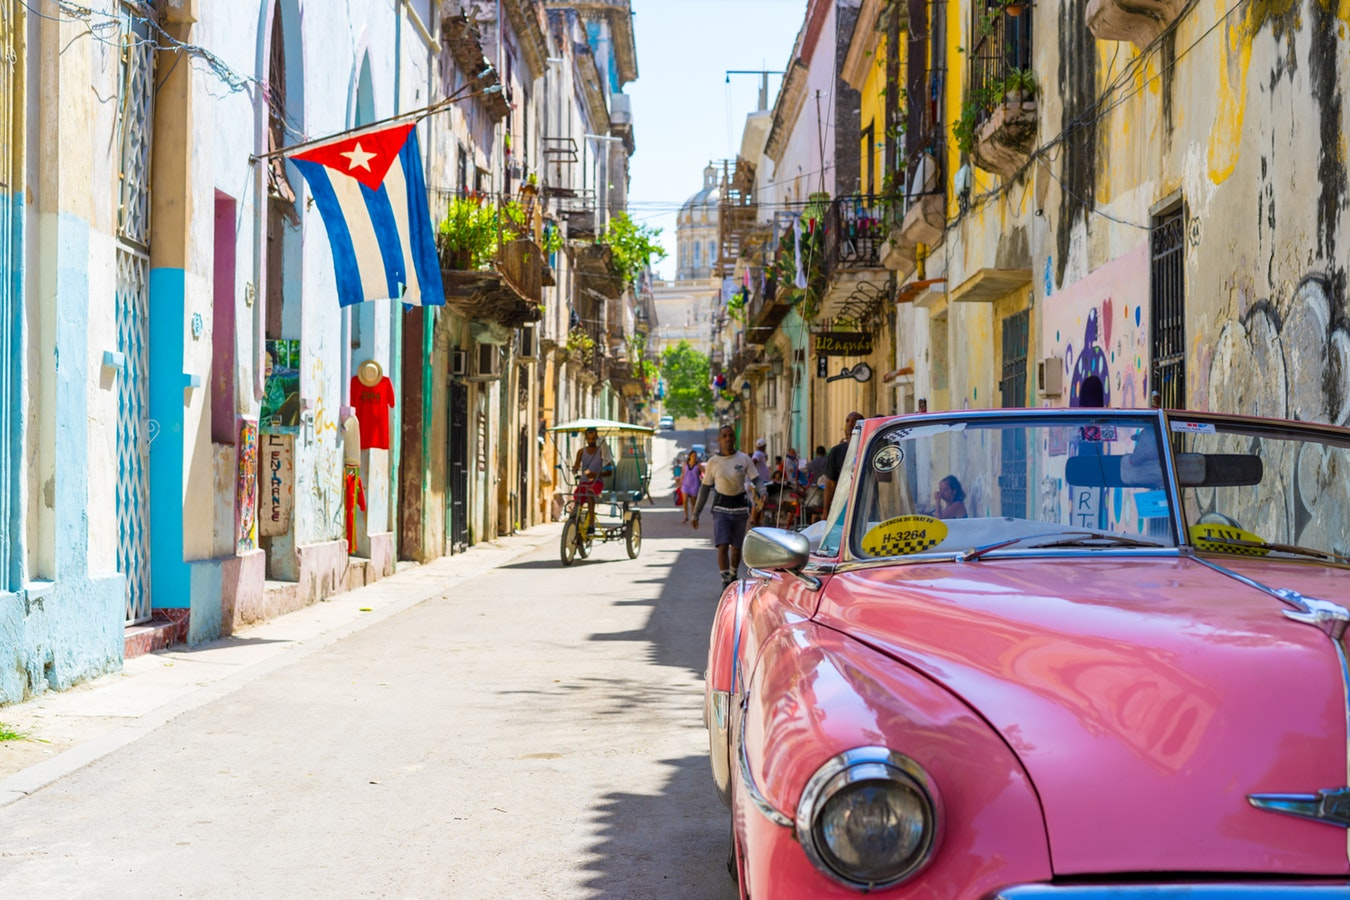 Cuba is the Caribbean's largest island and it is rich in history and culture.